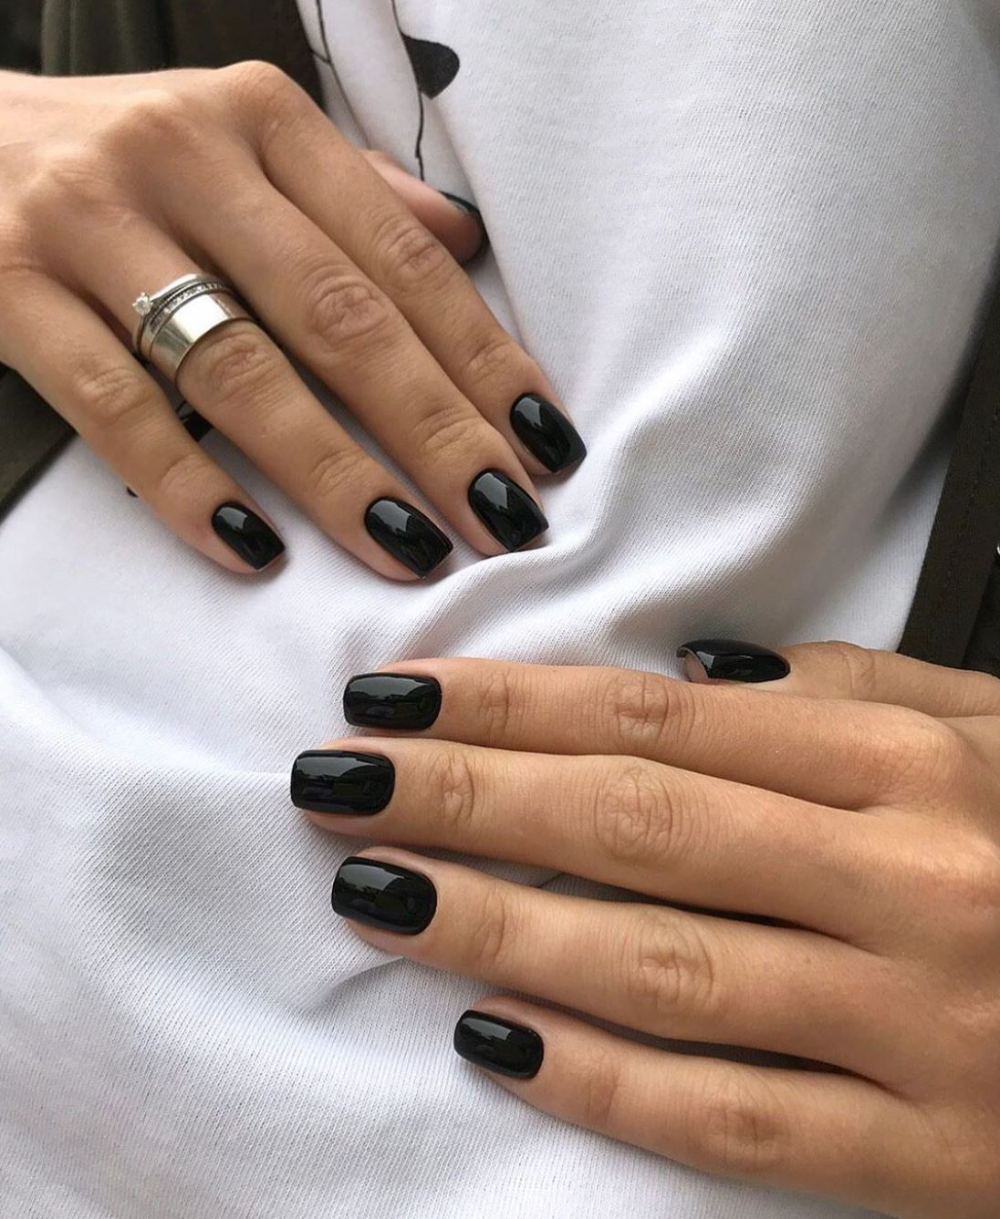 10 Fall Nail Art Ideas You'll Wish To Try - THE STREET VIBE #fallnails